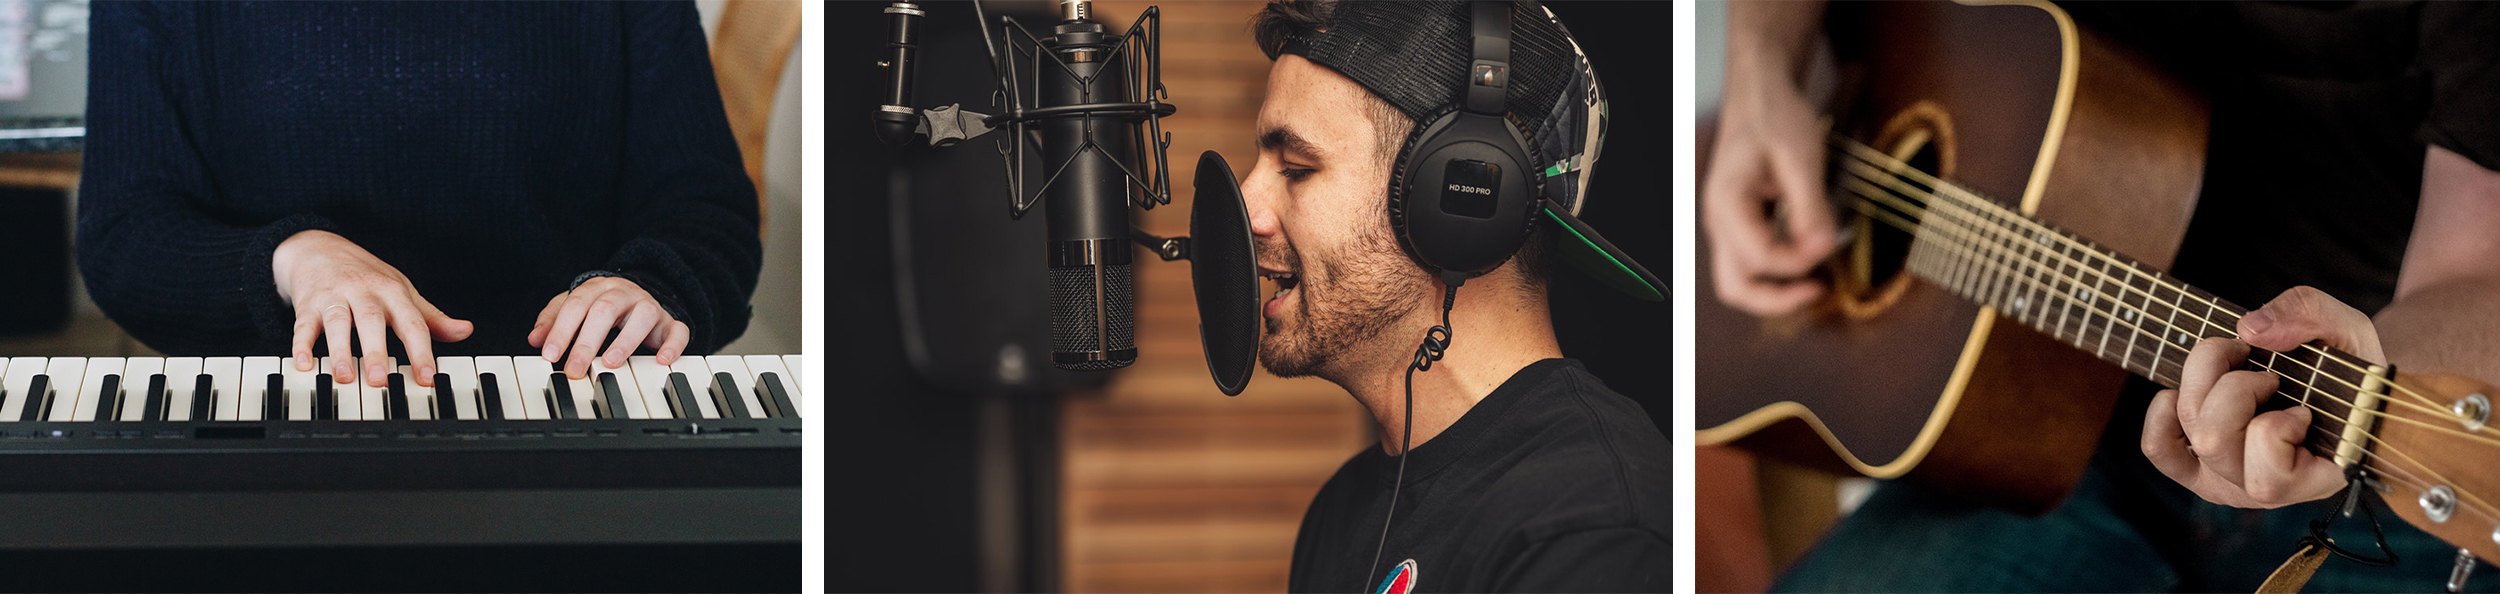 Three photos: hands playing a keyboard (from the front), man singing into a studio mic with headphones, up close view of acoustic guitar playing hands.